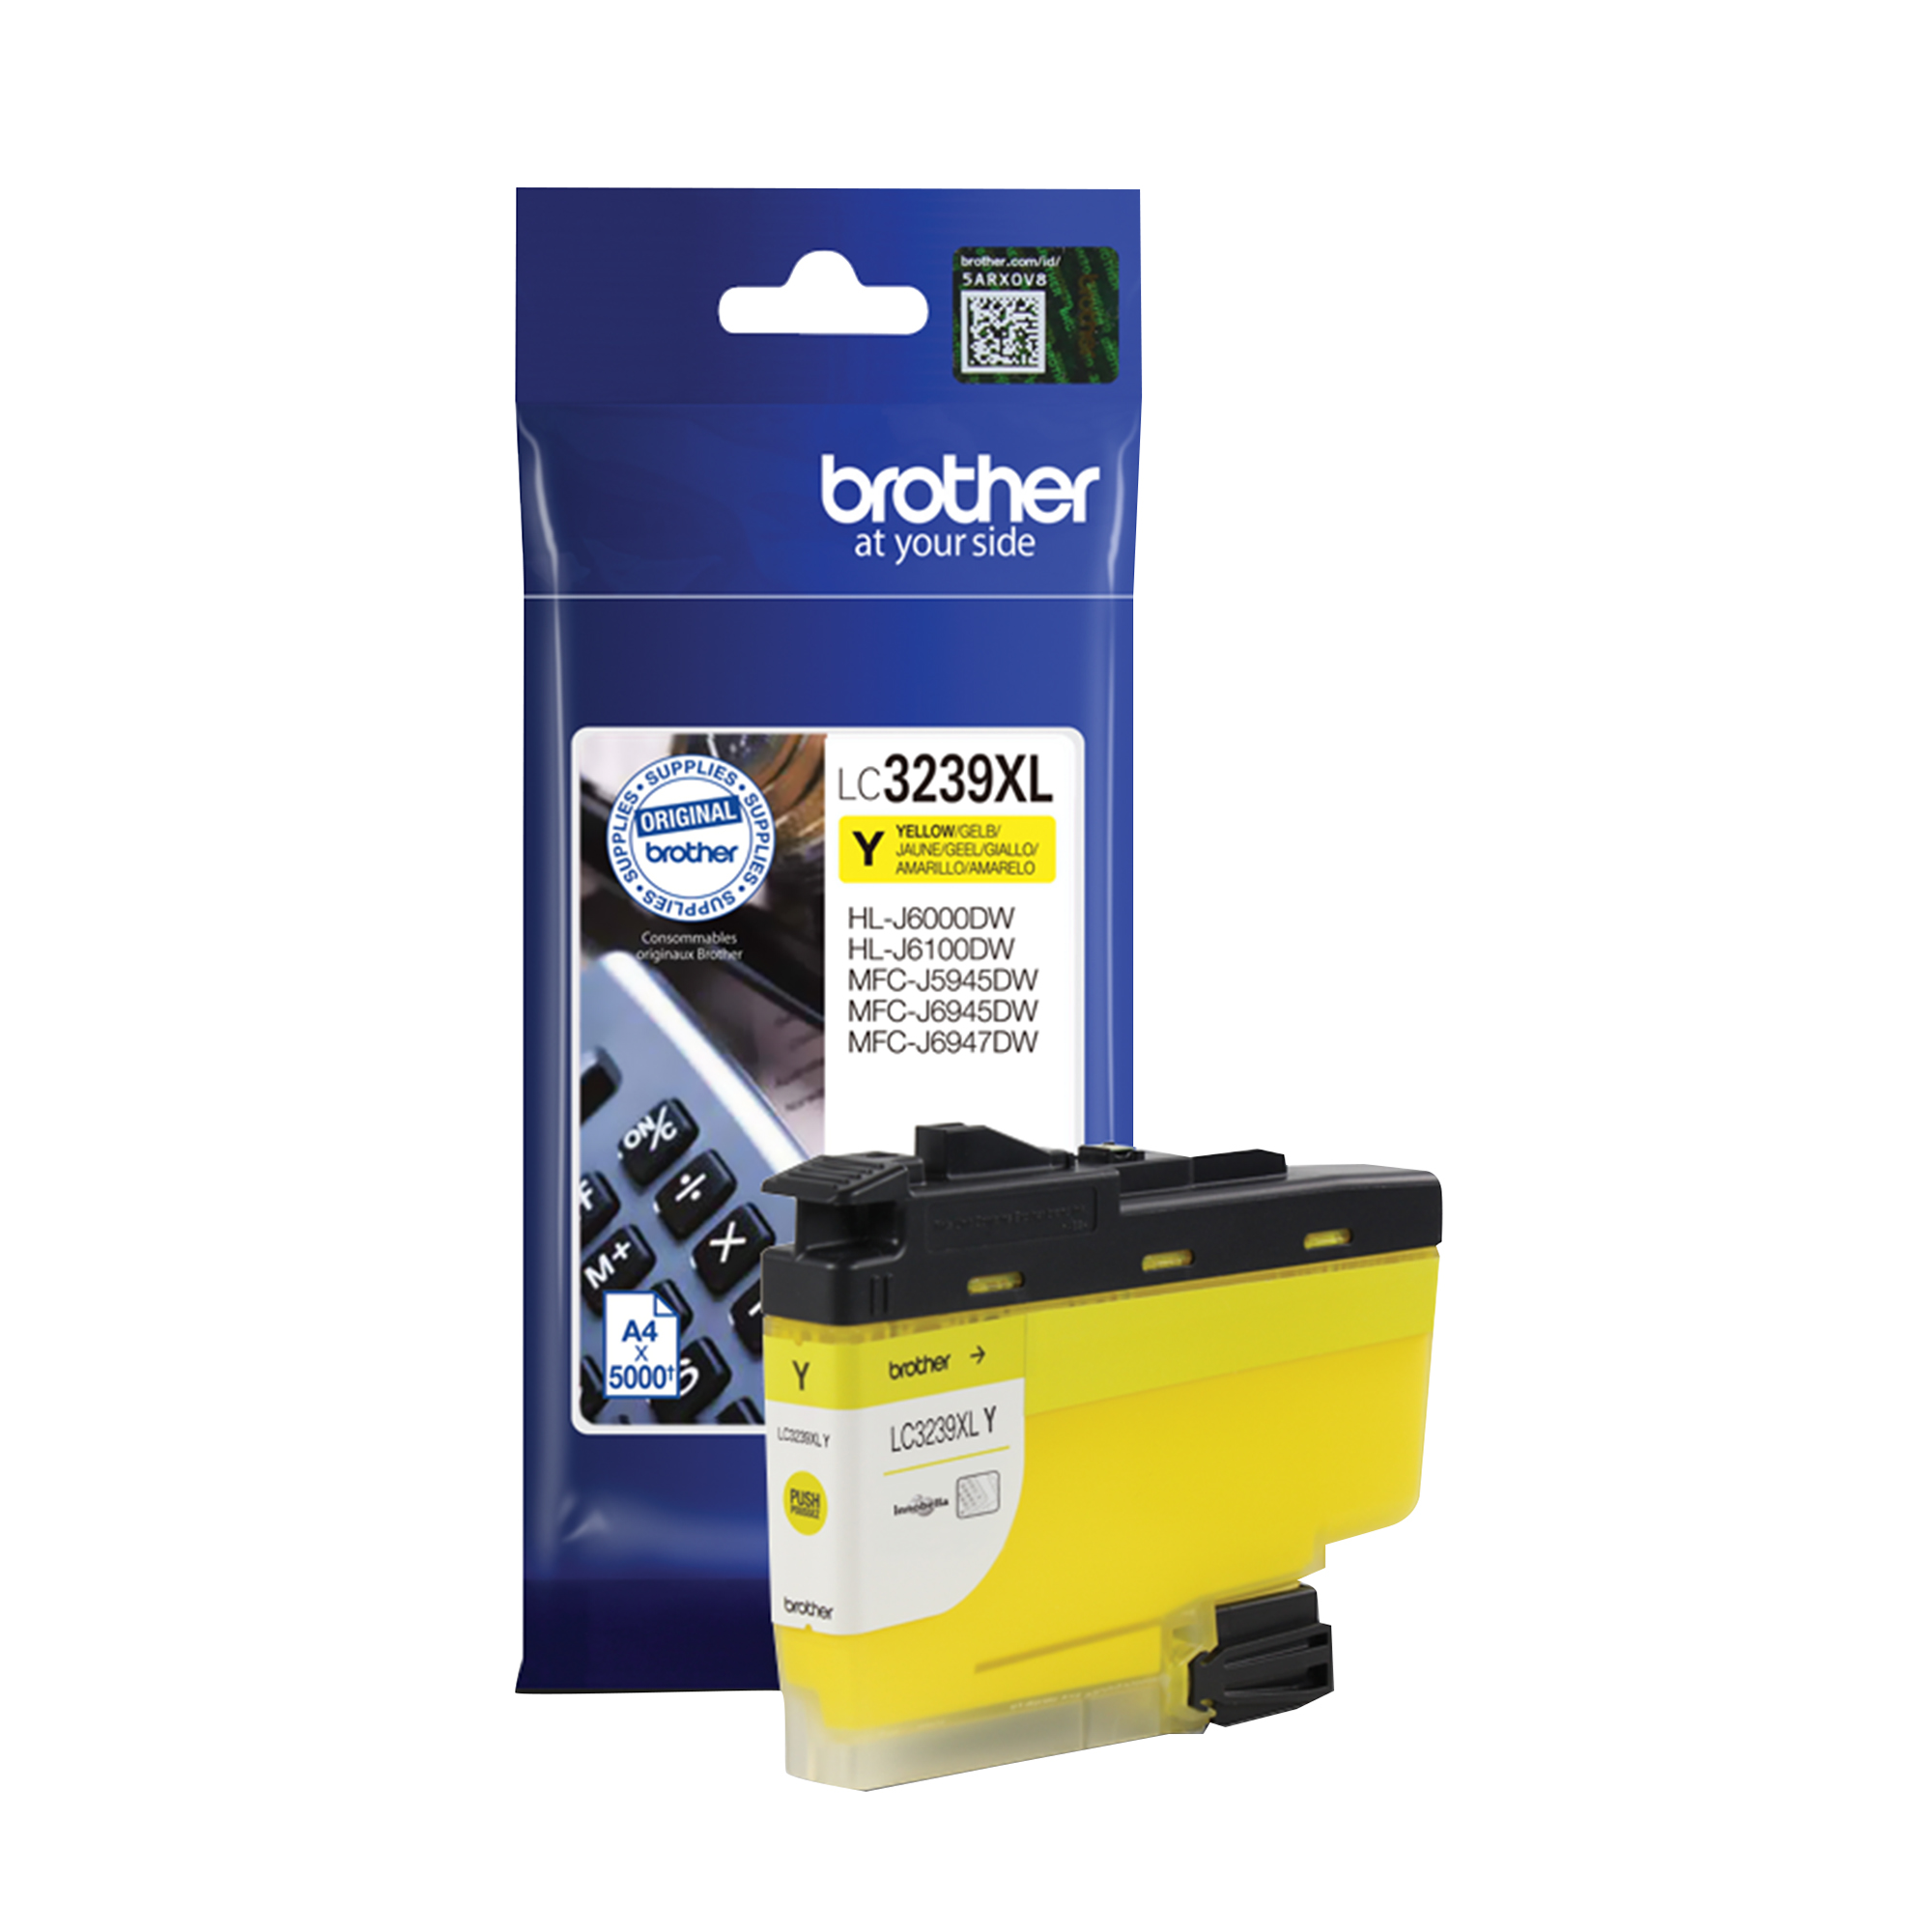 Brother LC3239XLY Ink Cartridge High Yield Page Life 5000pp Yellow Ref LC3239XLY